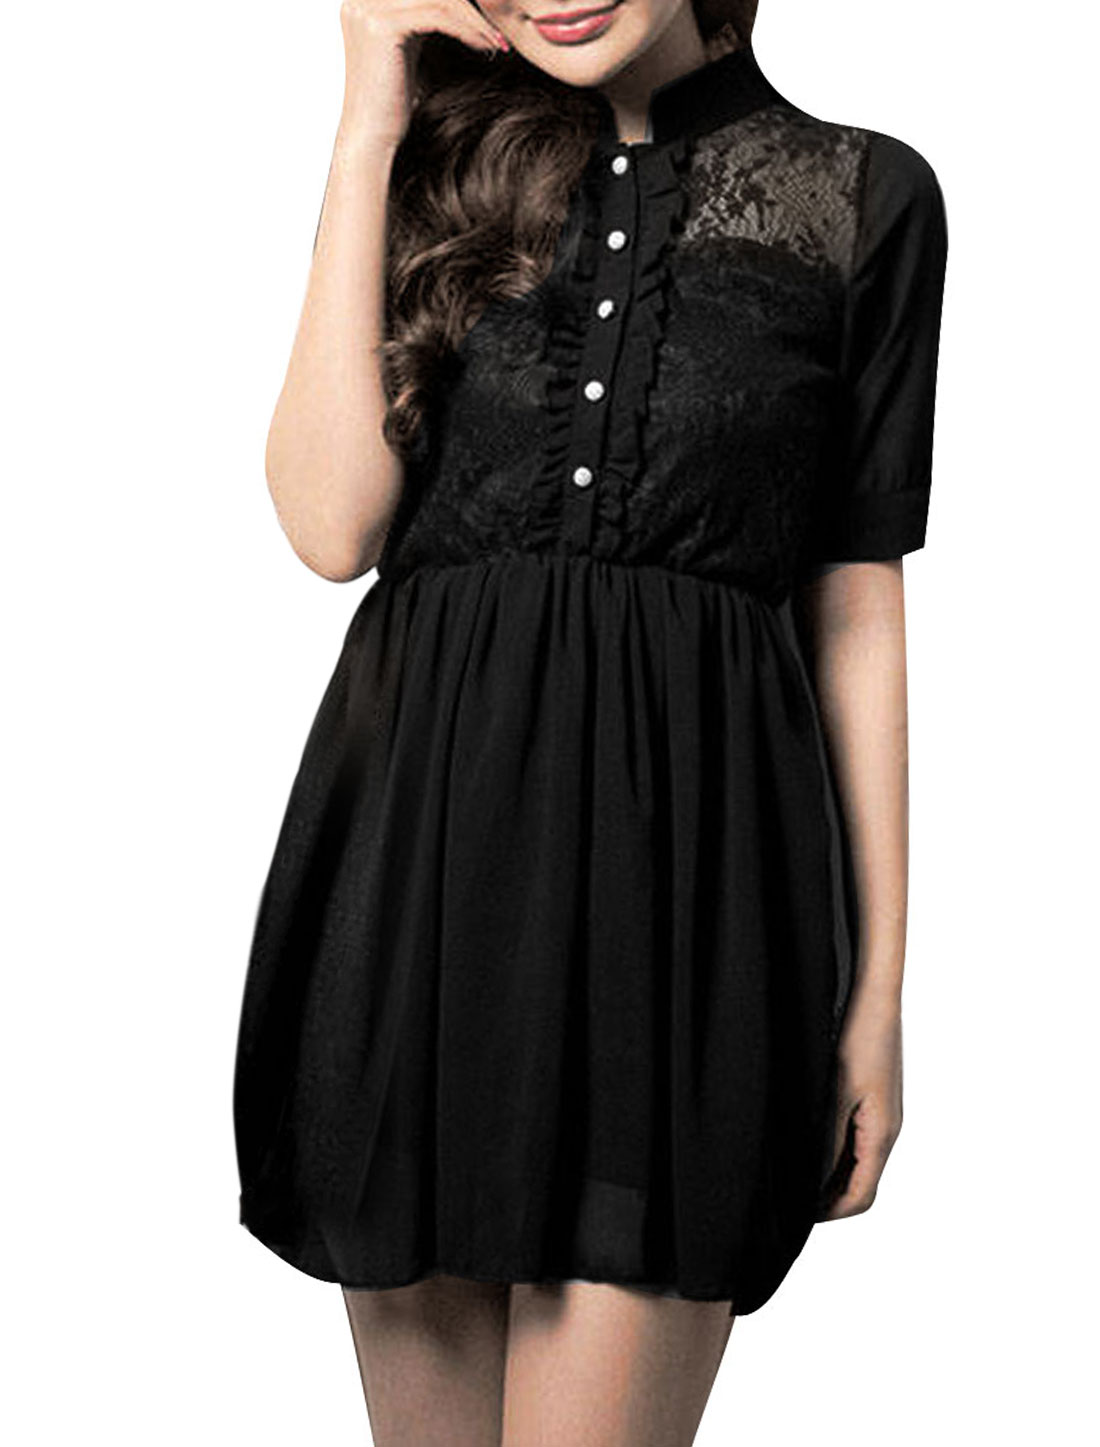 Ladies Black Stand Collar Button Closure Upper Lace Panel Dress XS